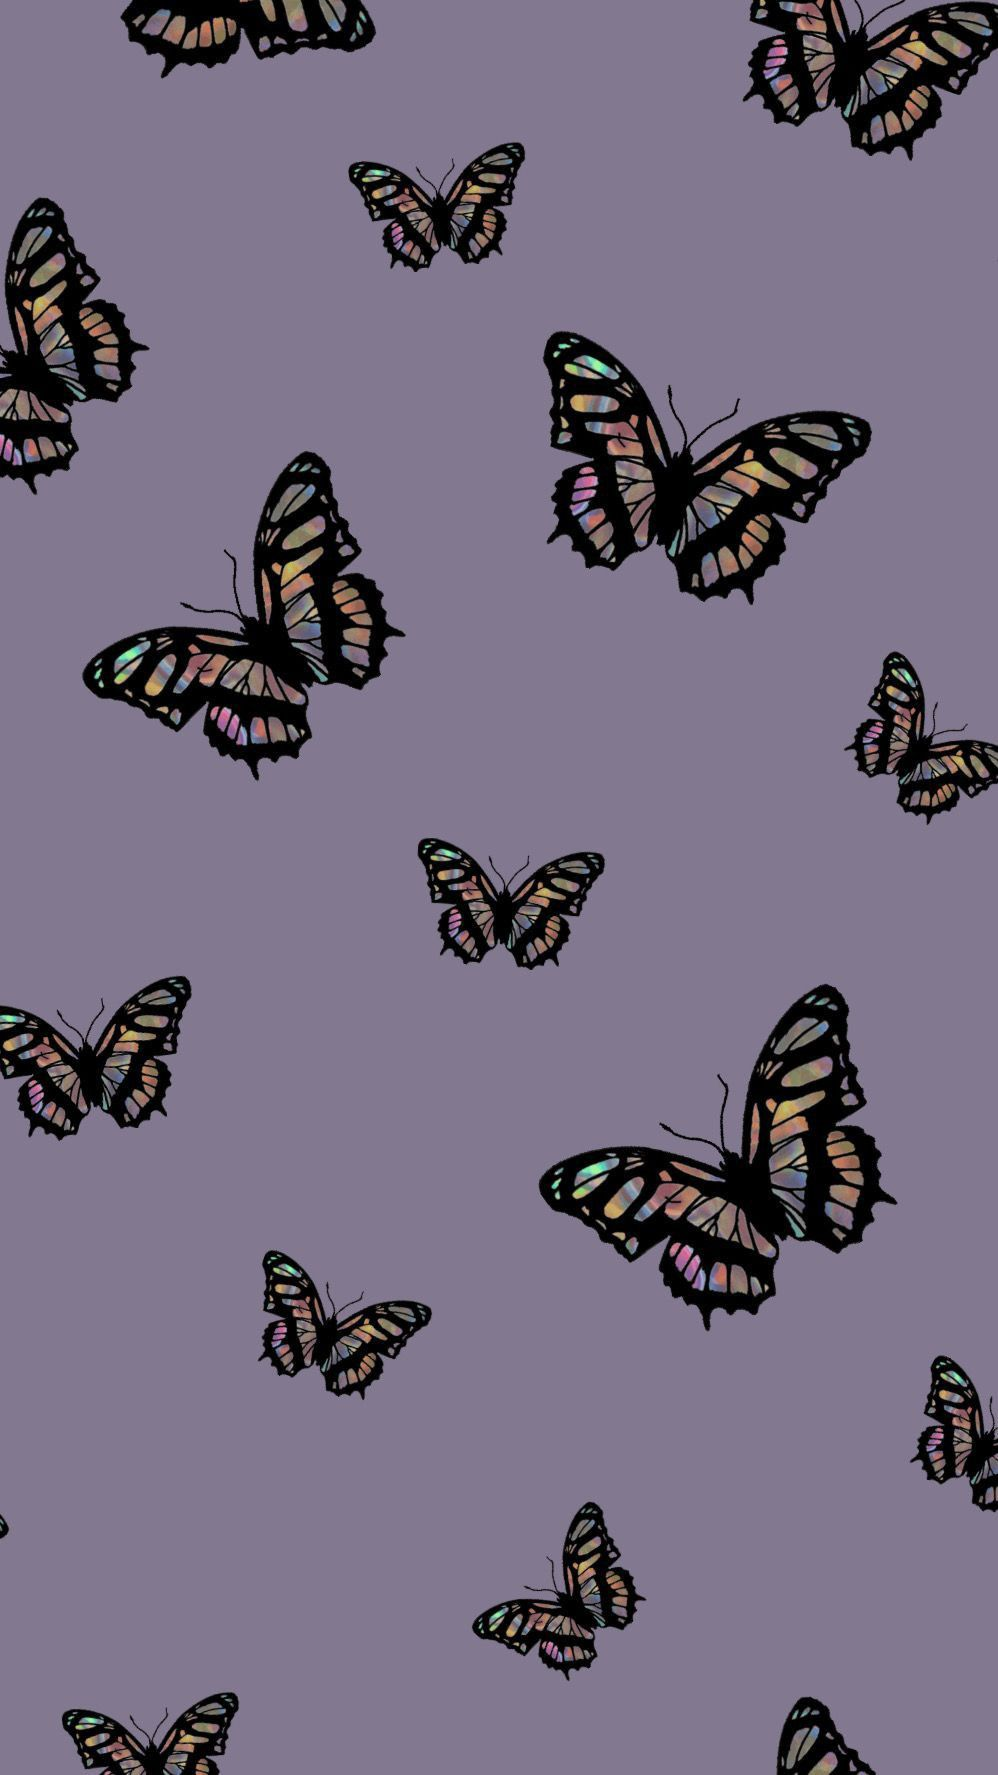 Pin By Bella Babe On Wallpaper Art Wallpaper Iphone Trippy Wallpaper Butterfly Wallpaper Iphone